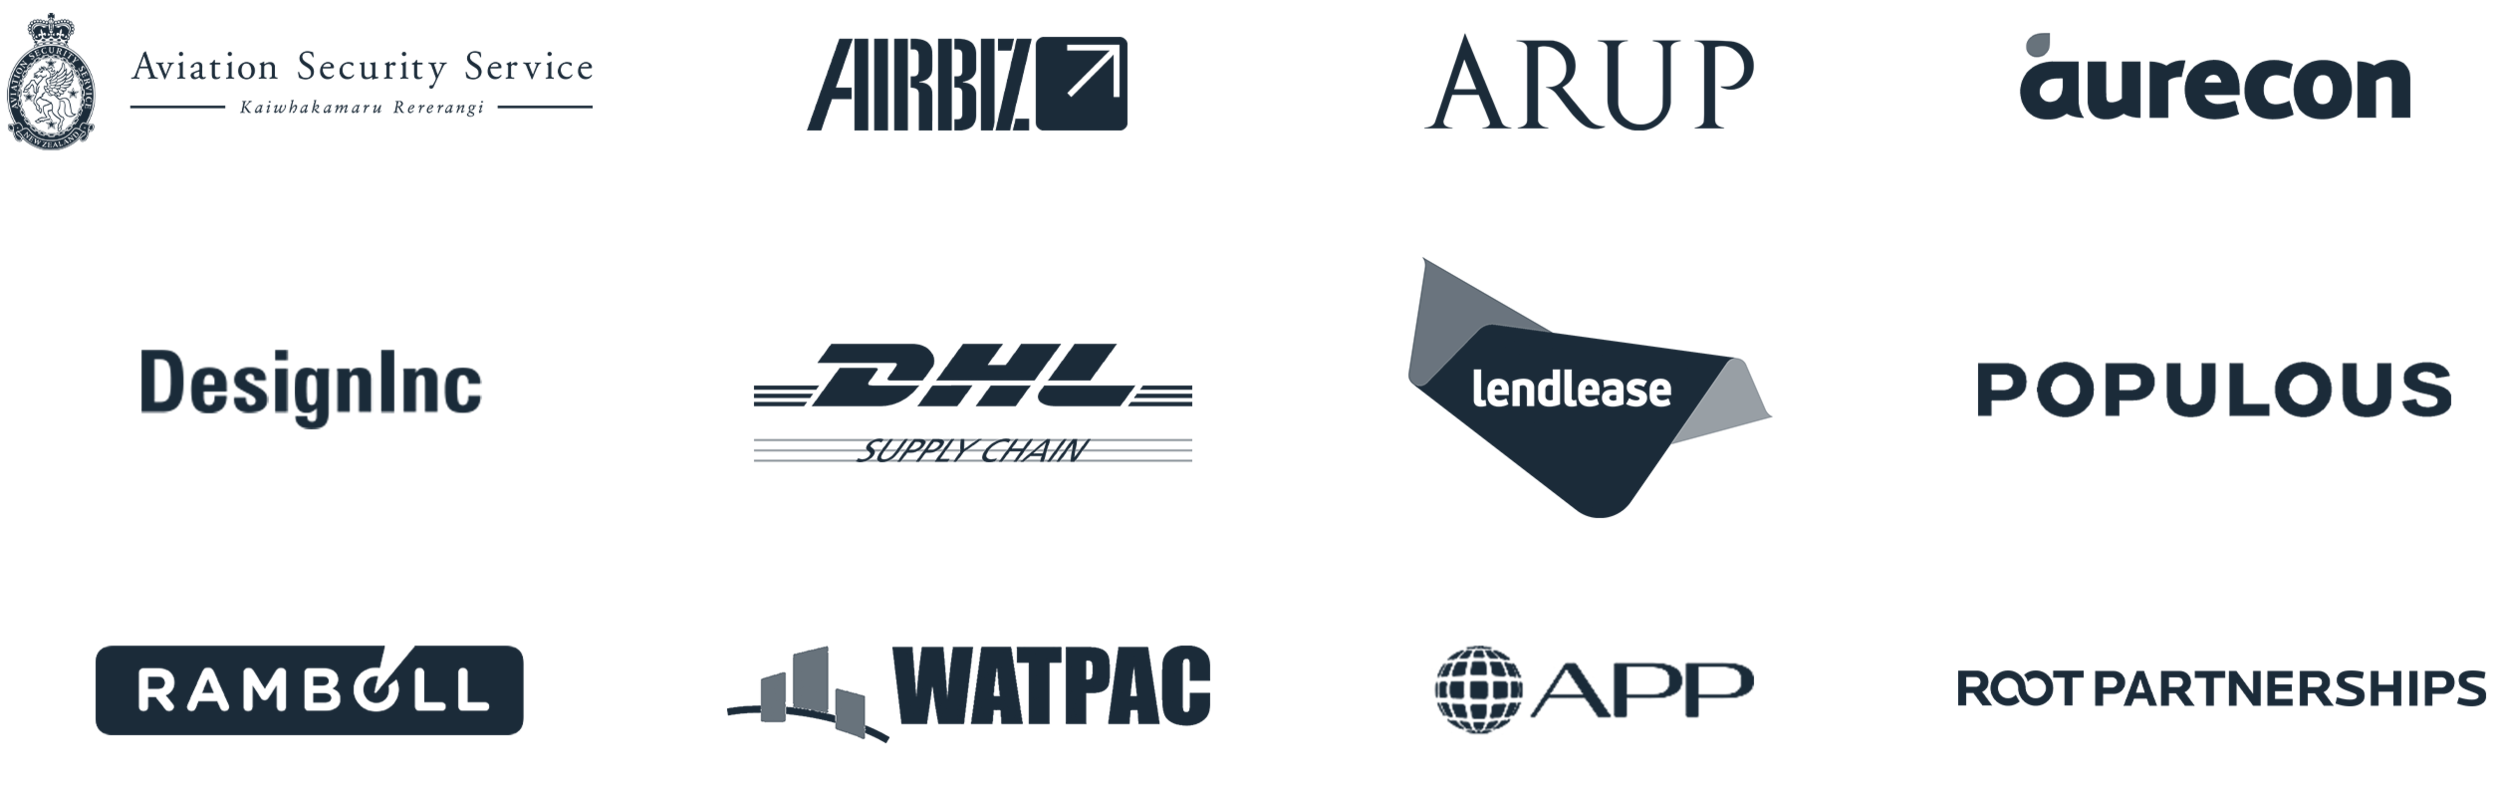 AvLogix Solutions Companies that we work with: Aviation Security Service New Zealand, Airbiz, ARUP, Aurecon, DesignInc, DHL Supply Chain, Lendlease, Populous, Ramboll, Watpac.